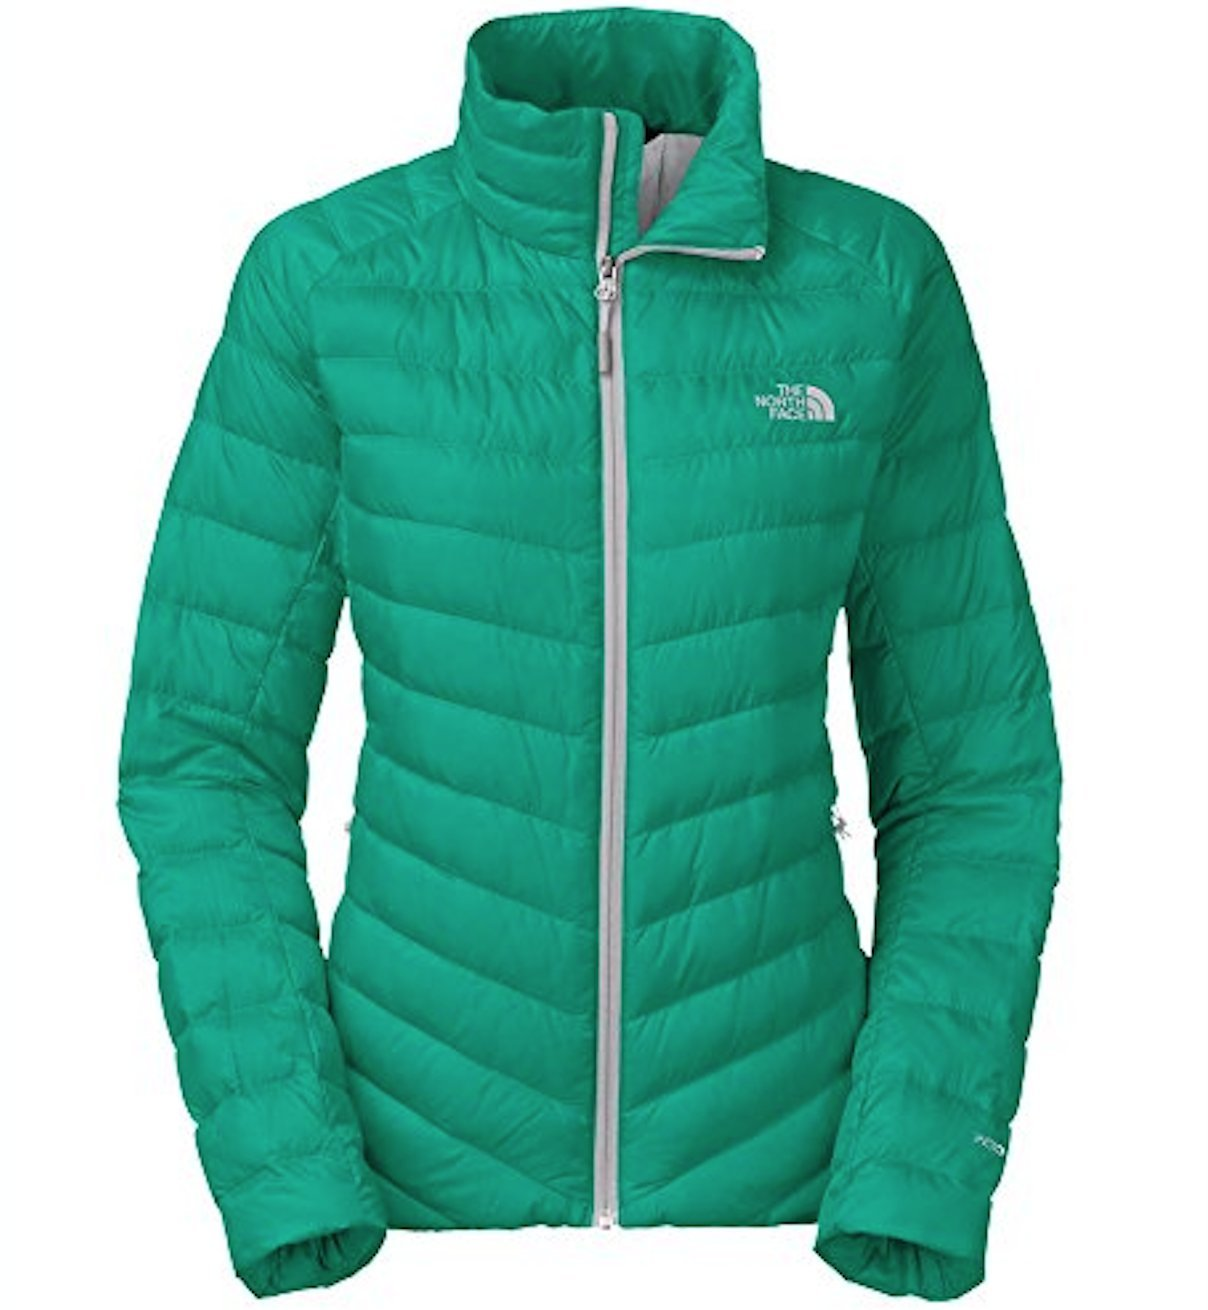 db3b82a99 Amazon.com: The North Face Womens 700-fill Goose Down Packable ...